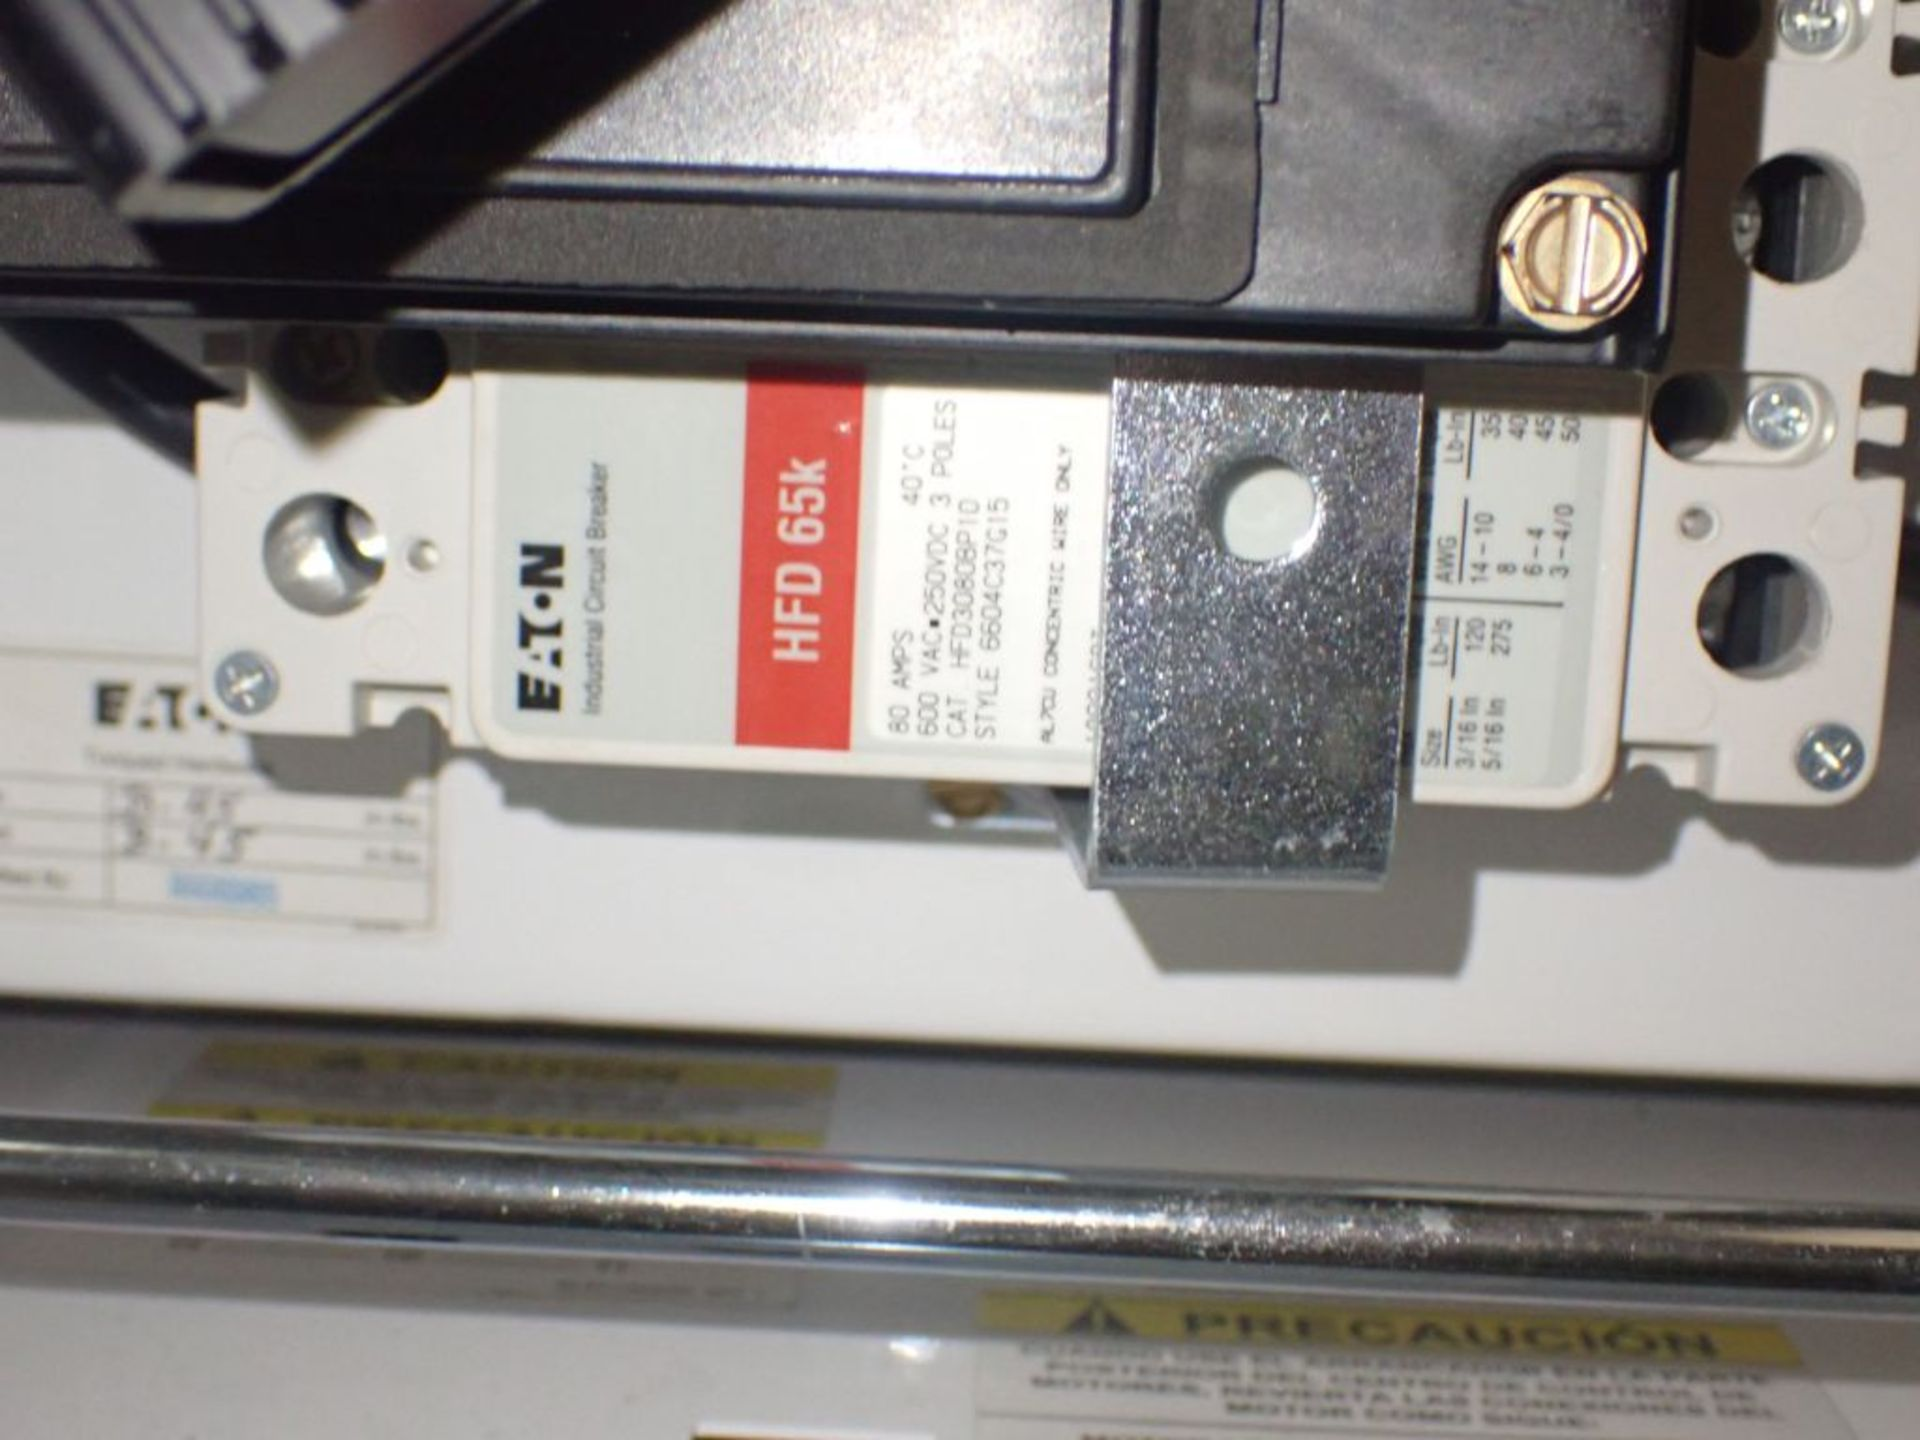 Eaton Freedom Flashgard Motor Control Center w/Components | (5) F206-15A-10HP; (4) F206-30A-10HP; ( - Image 83 of 84